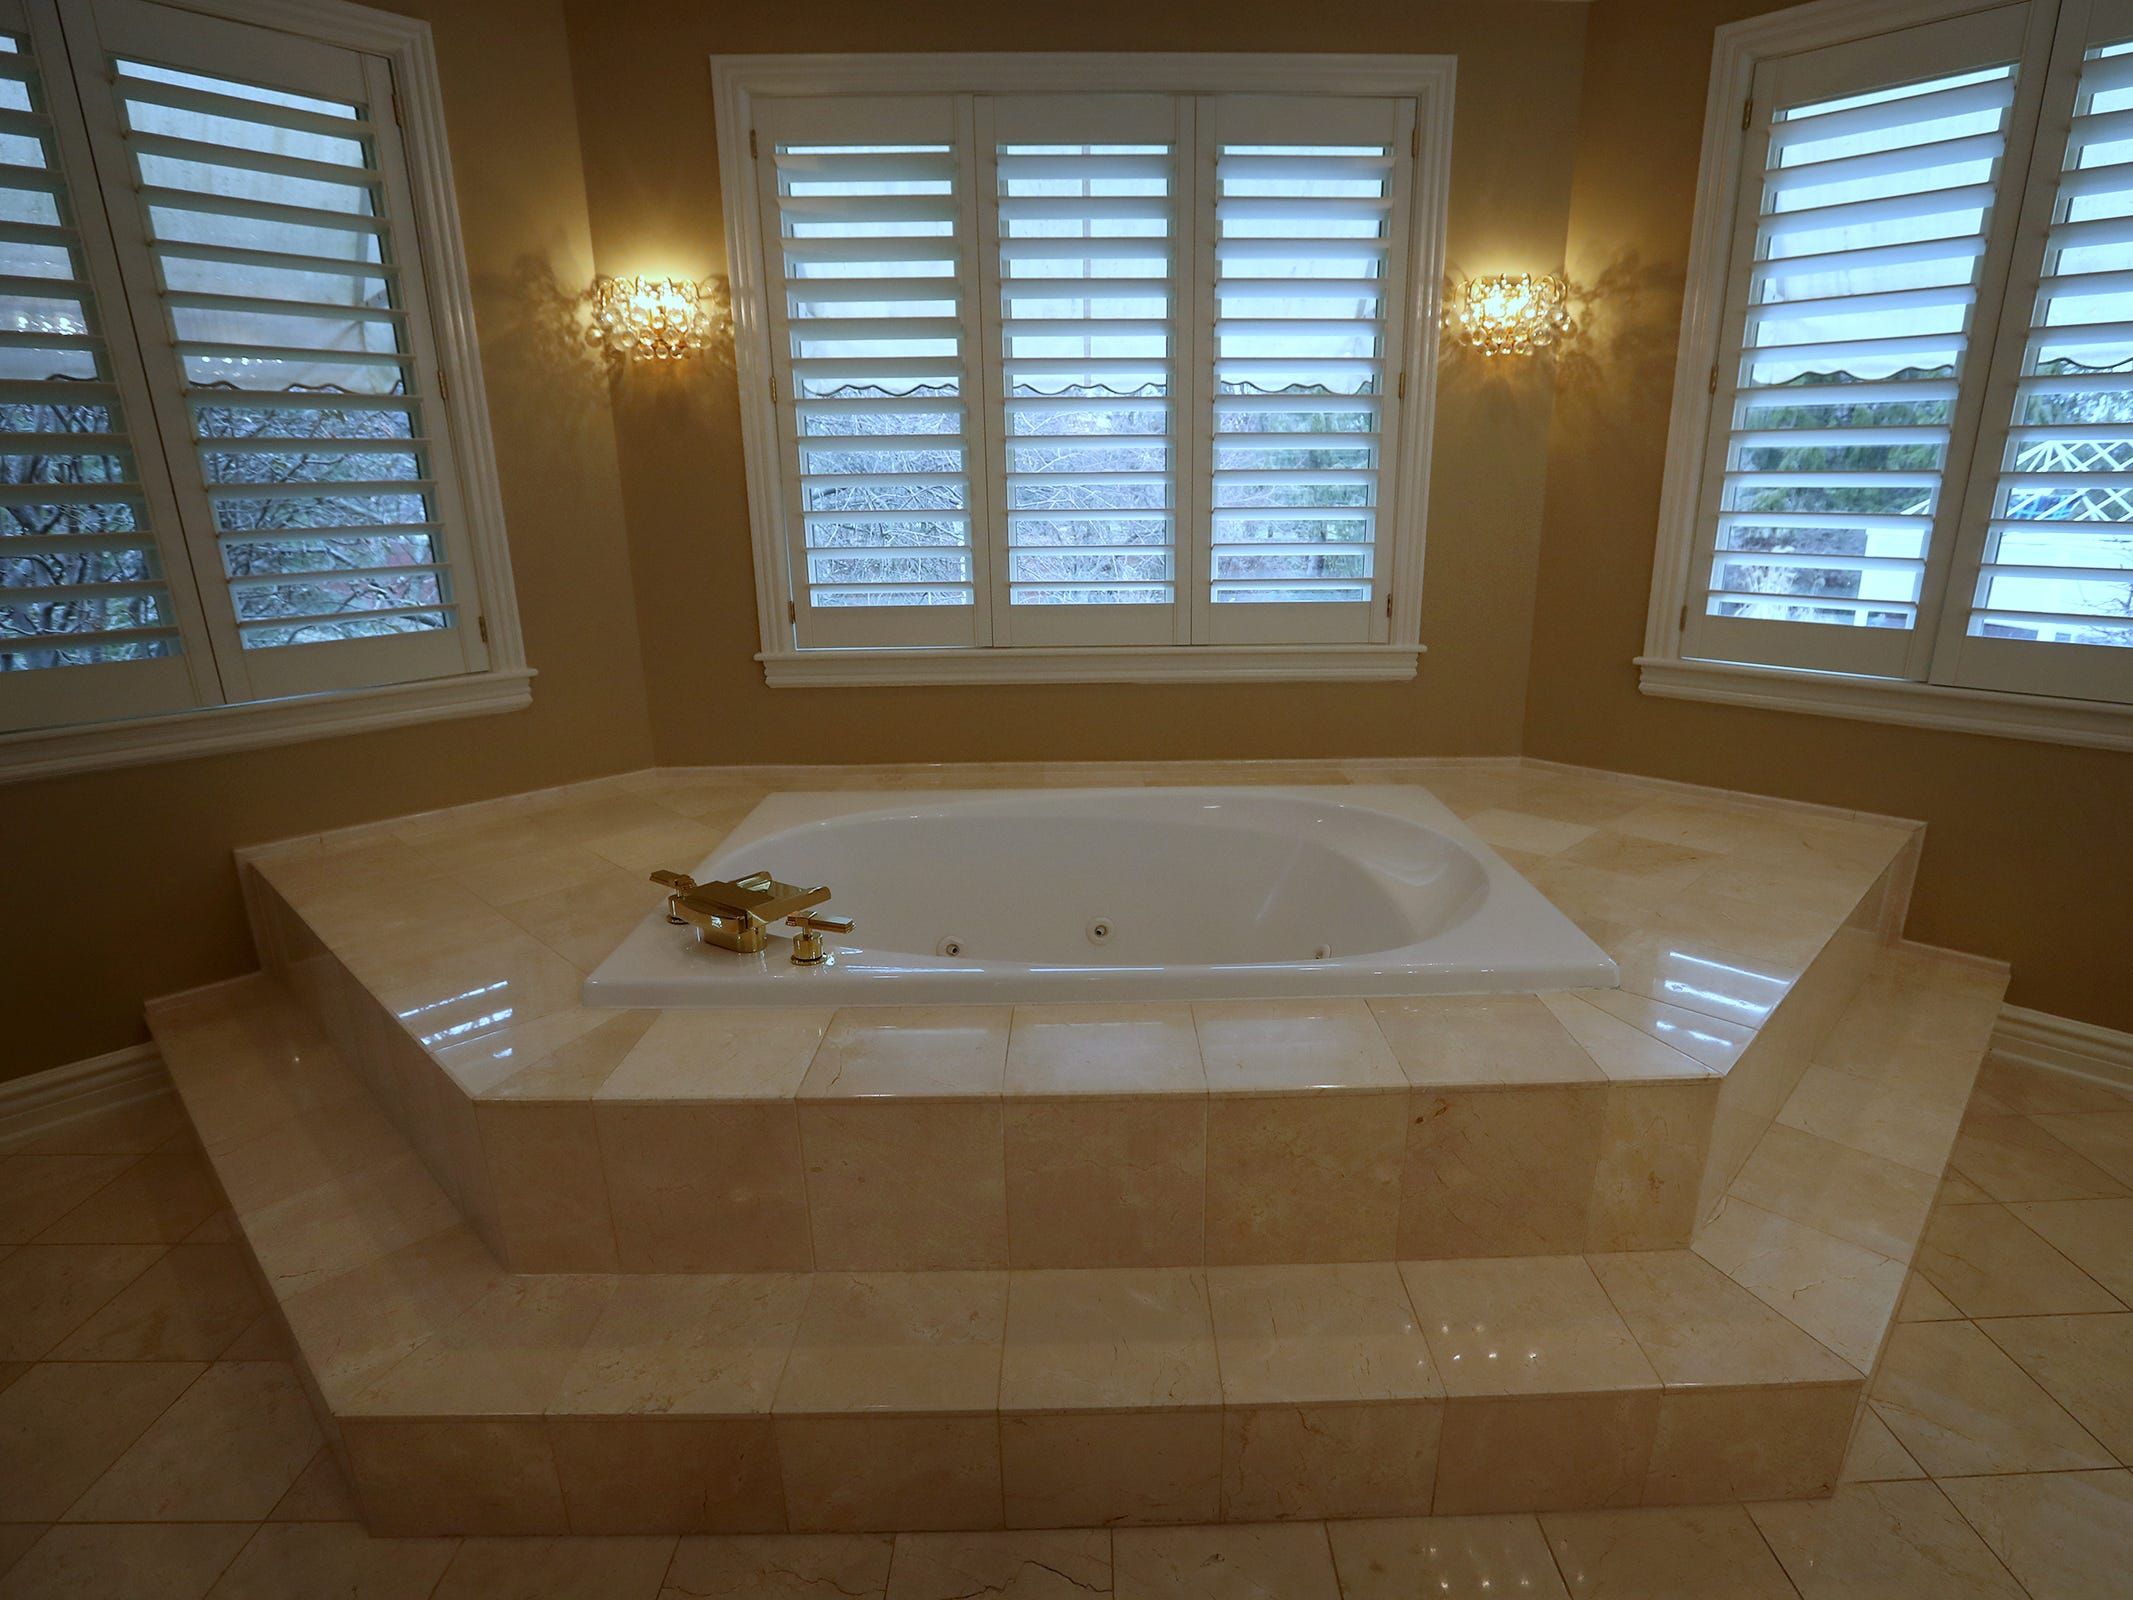 This is the bathtub in the master bathroom in the home at 1270 Laurelwood Ct. in Carmel, Friday, Dec. 28, 2018.